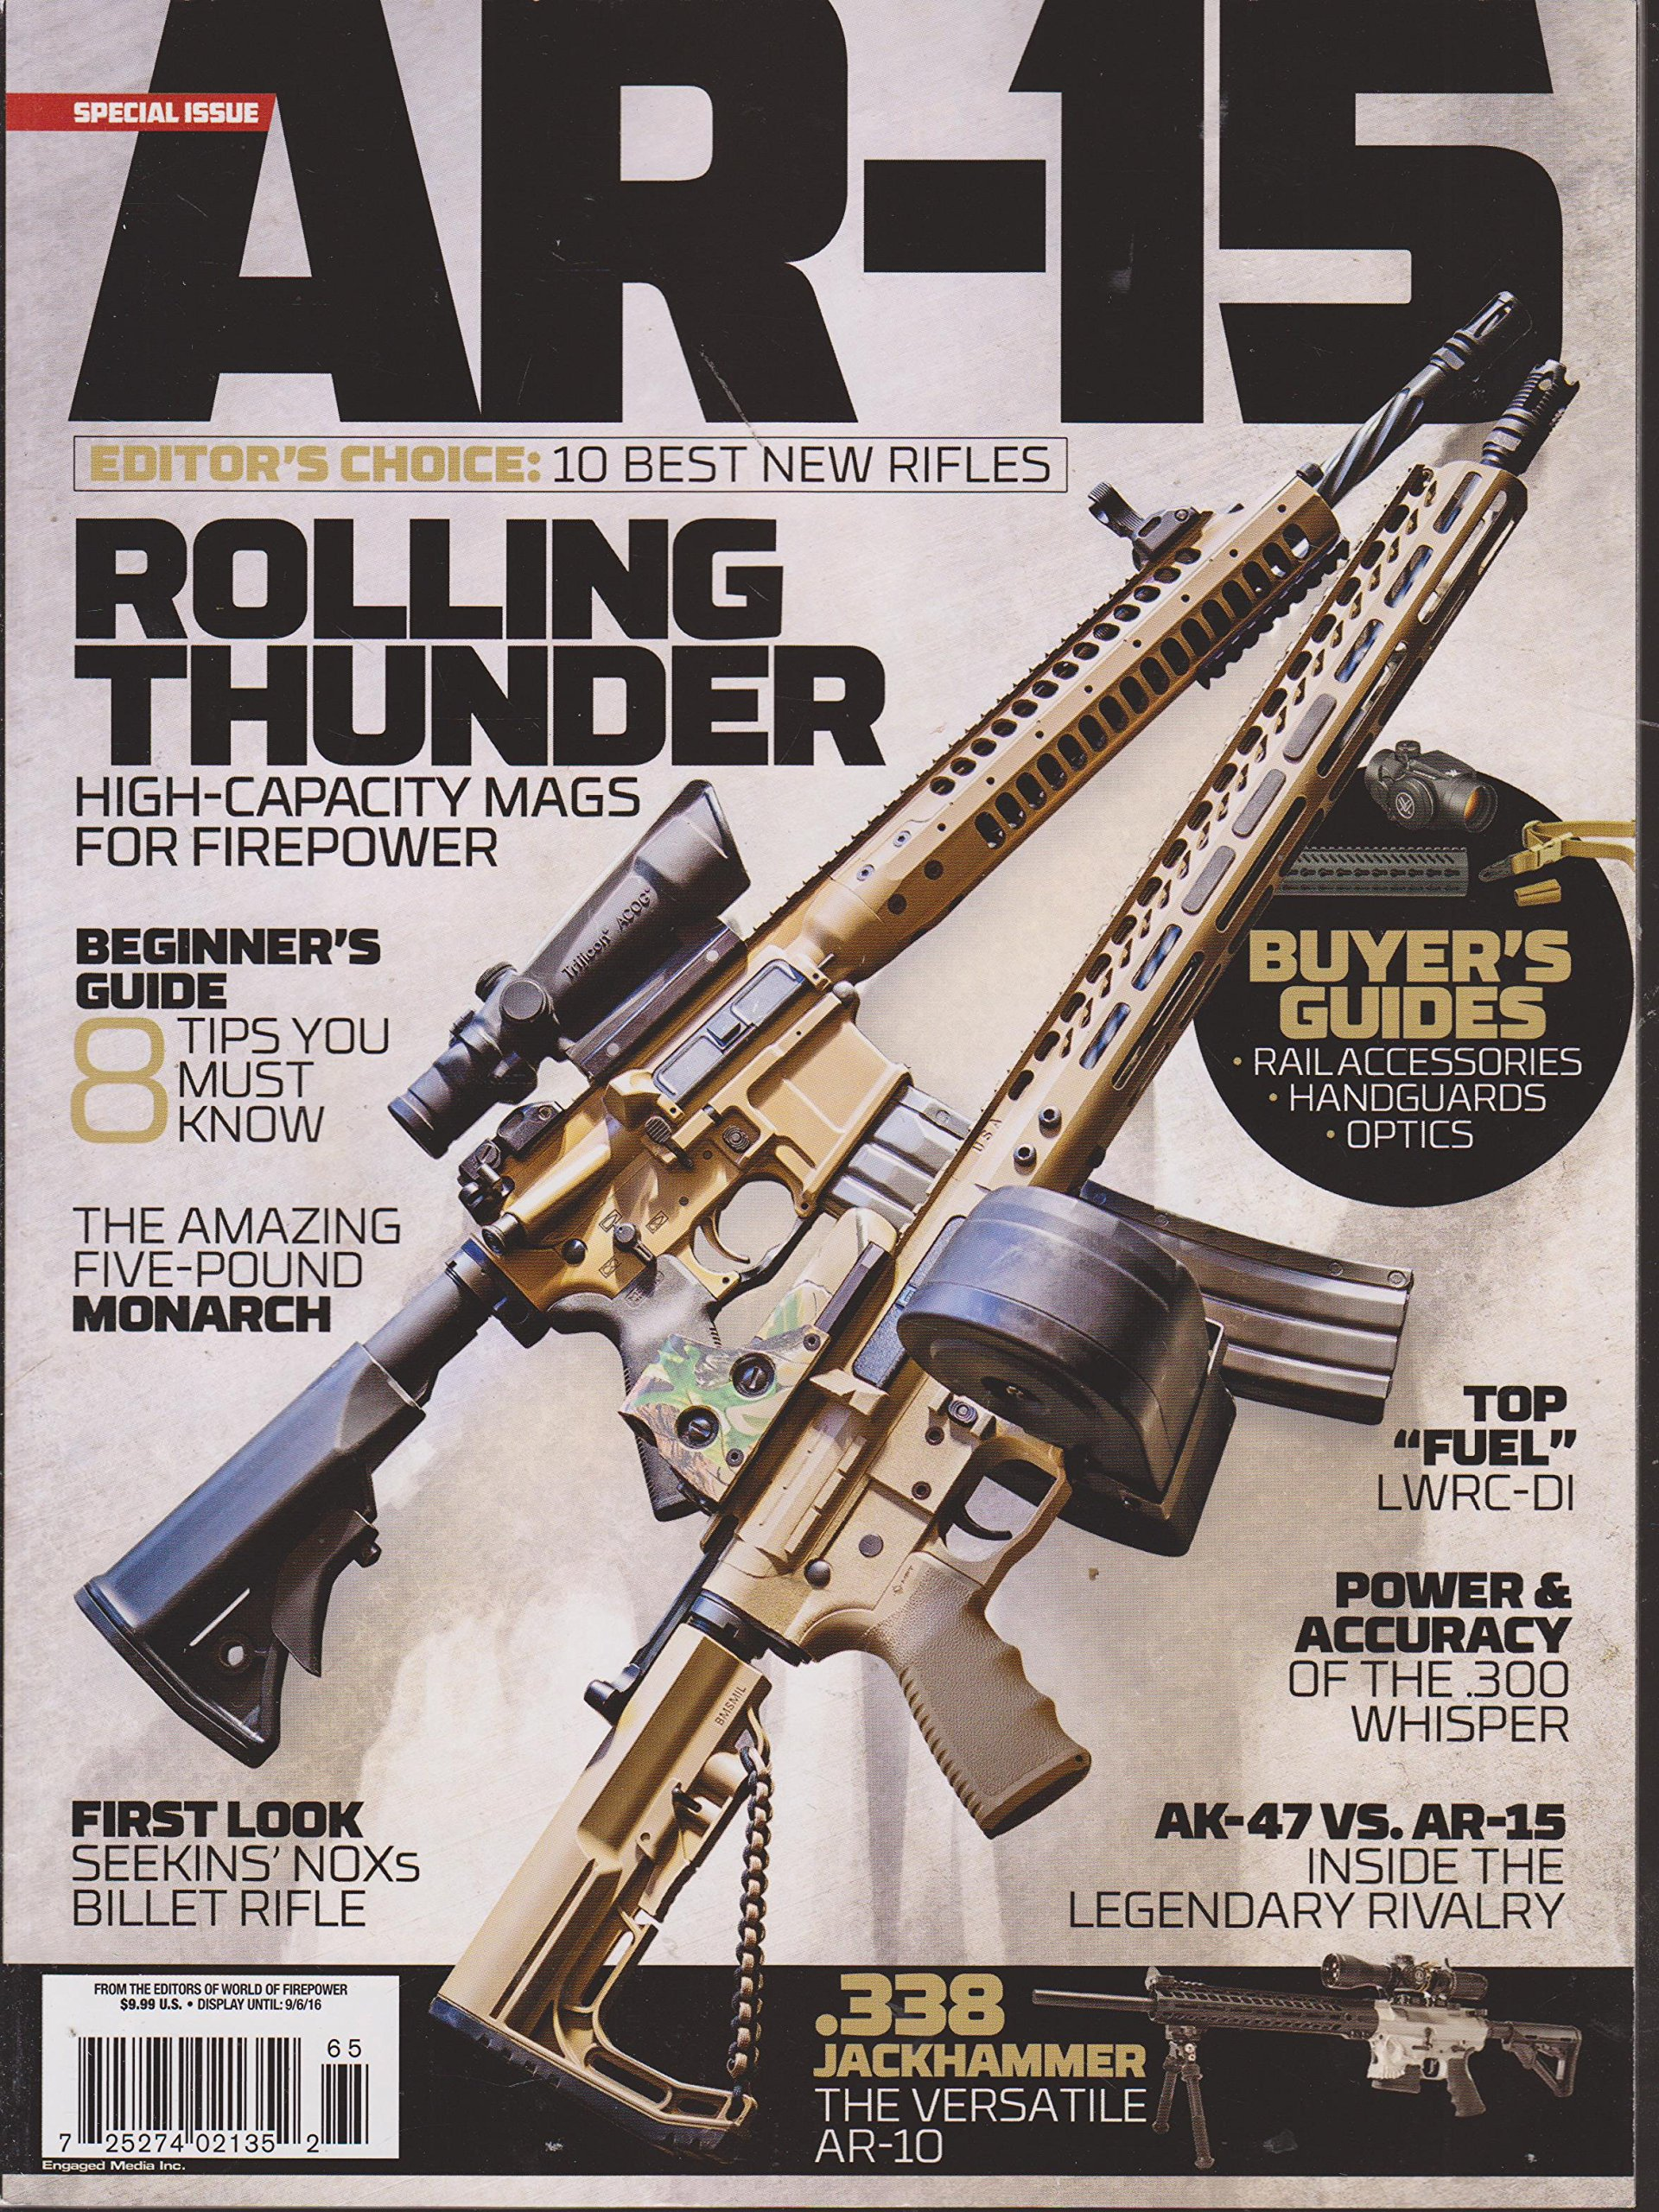 World of Firepower Magazine Ar-15 Special pdf epub